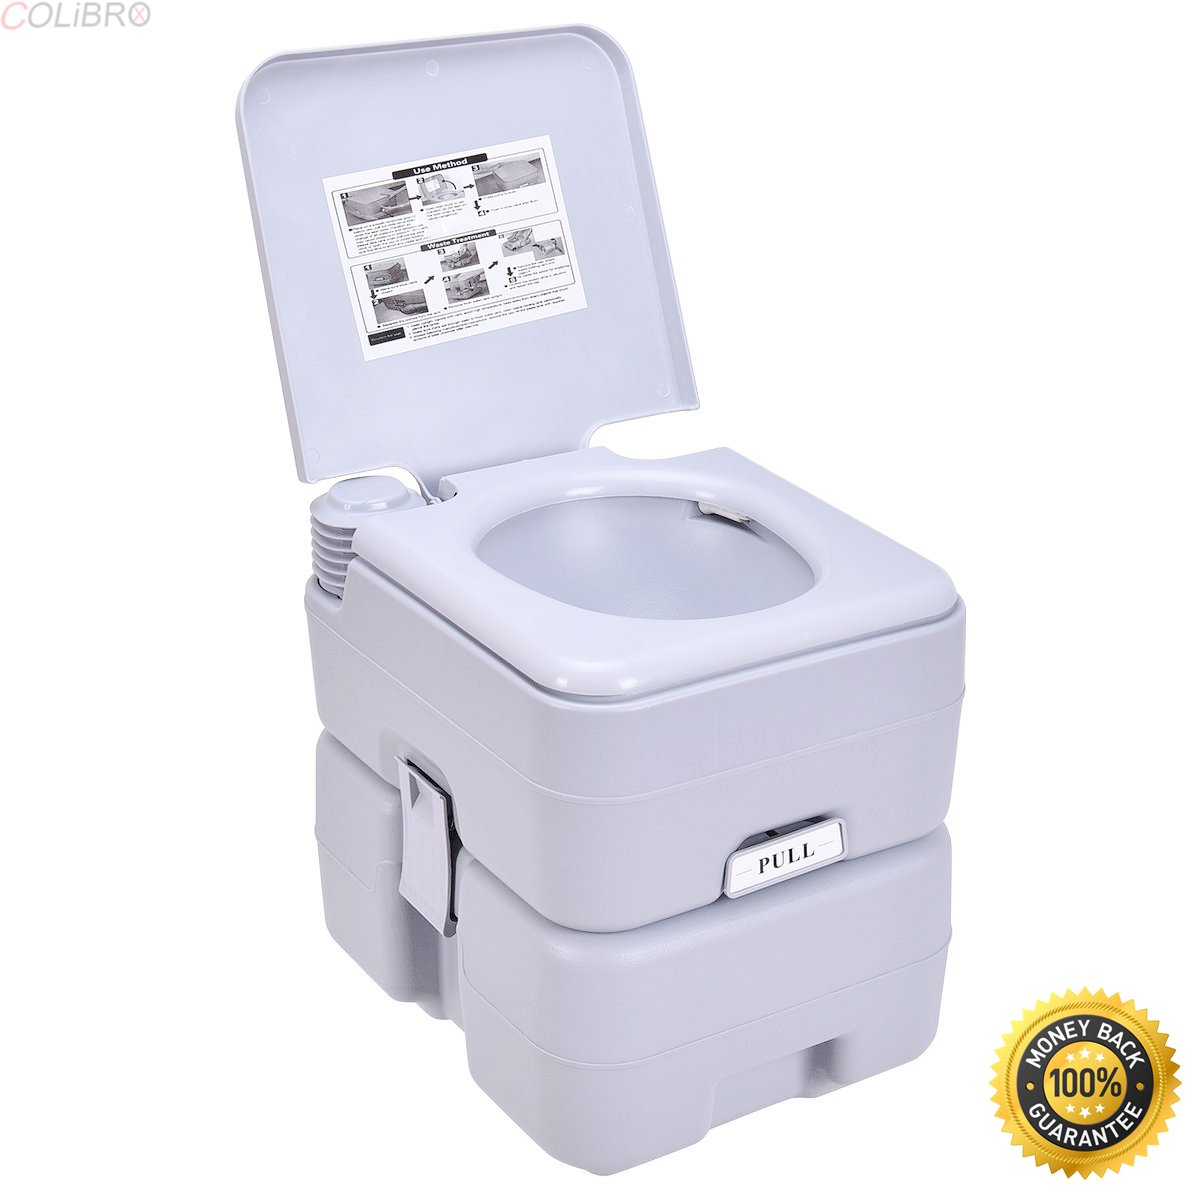 COLIBROX--5 Gallon 20L Portable Toilet Flush Travel Camping Outdoor/Indoor Potty Commode,walters portable toilets,cheap toilets,luxury portable toilet,rei portable toilets,portable toilets for home us